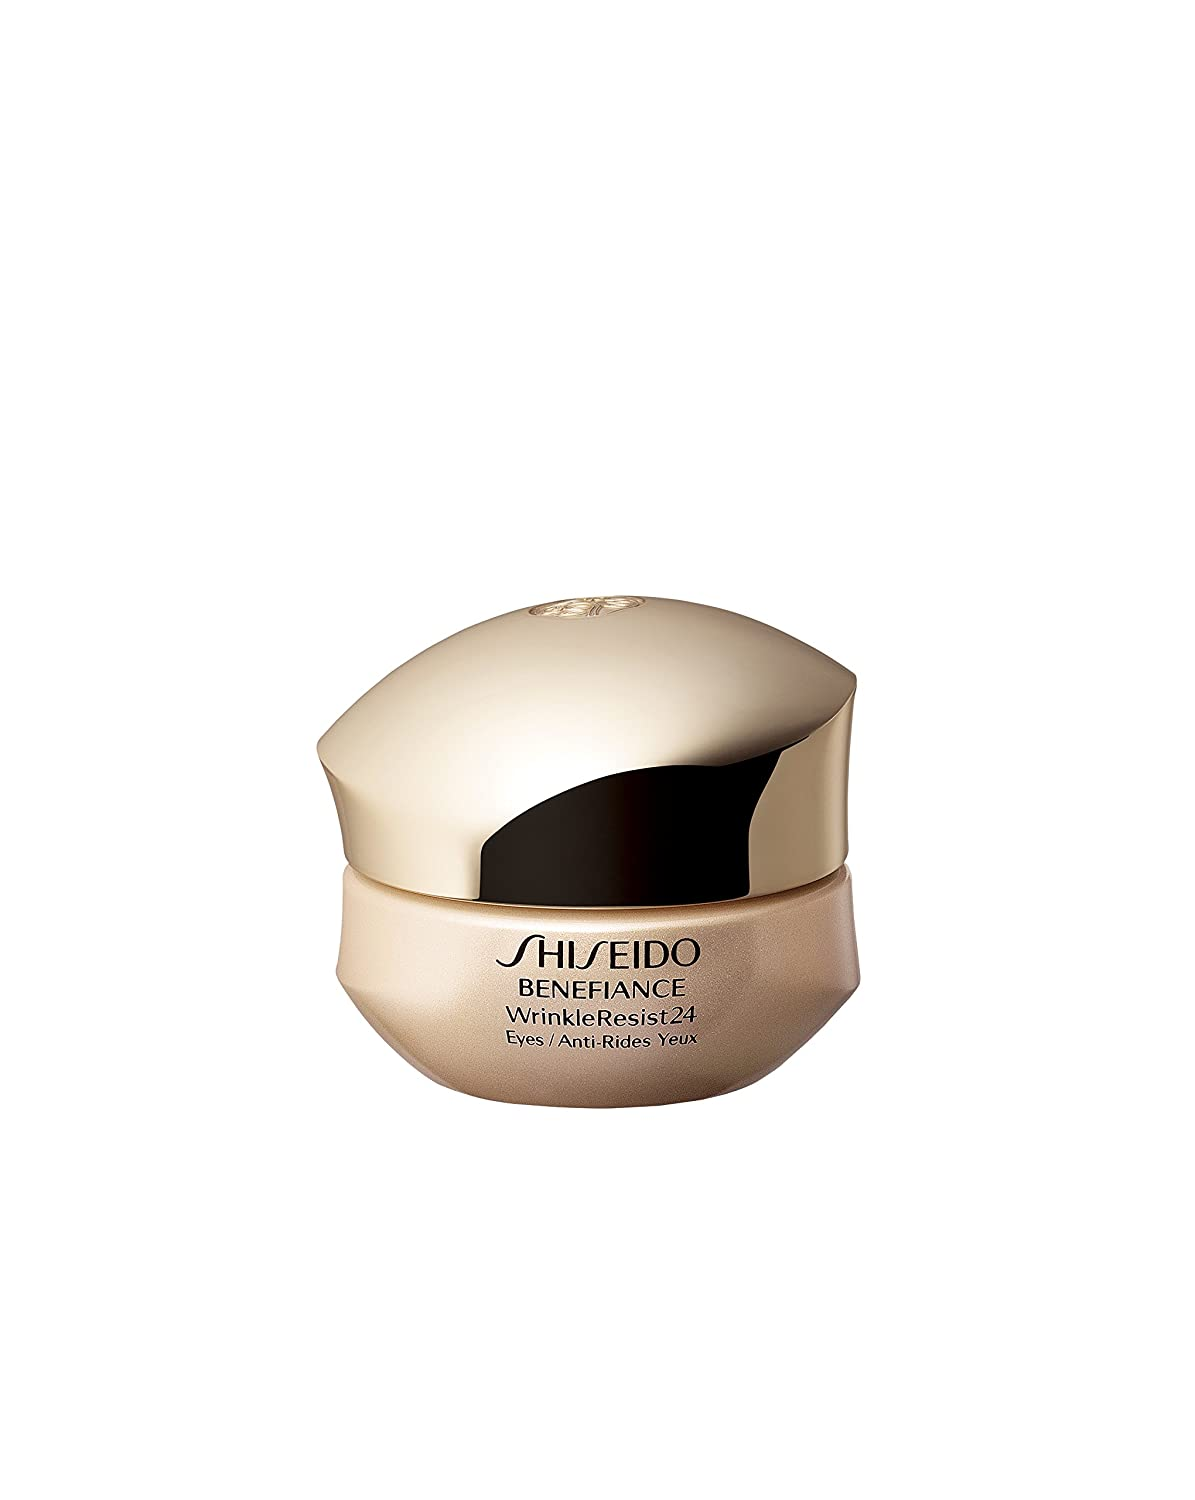 Shiseido Benefiance Wrinkle Resist24 Intensive Eye Contour Cream for Unisex, 0.51 Ounce 0730852103153 39039